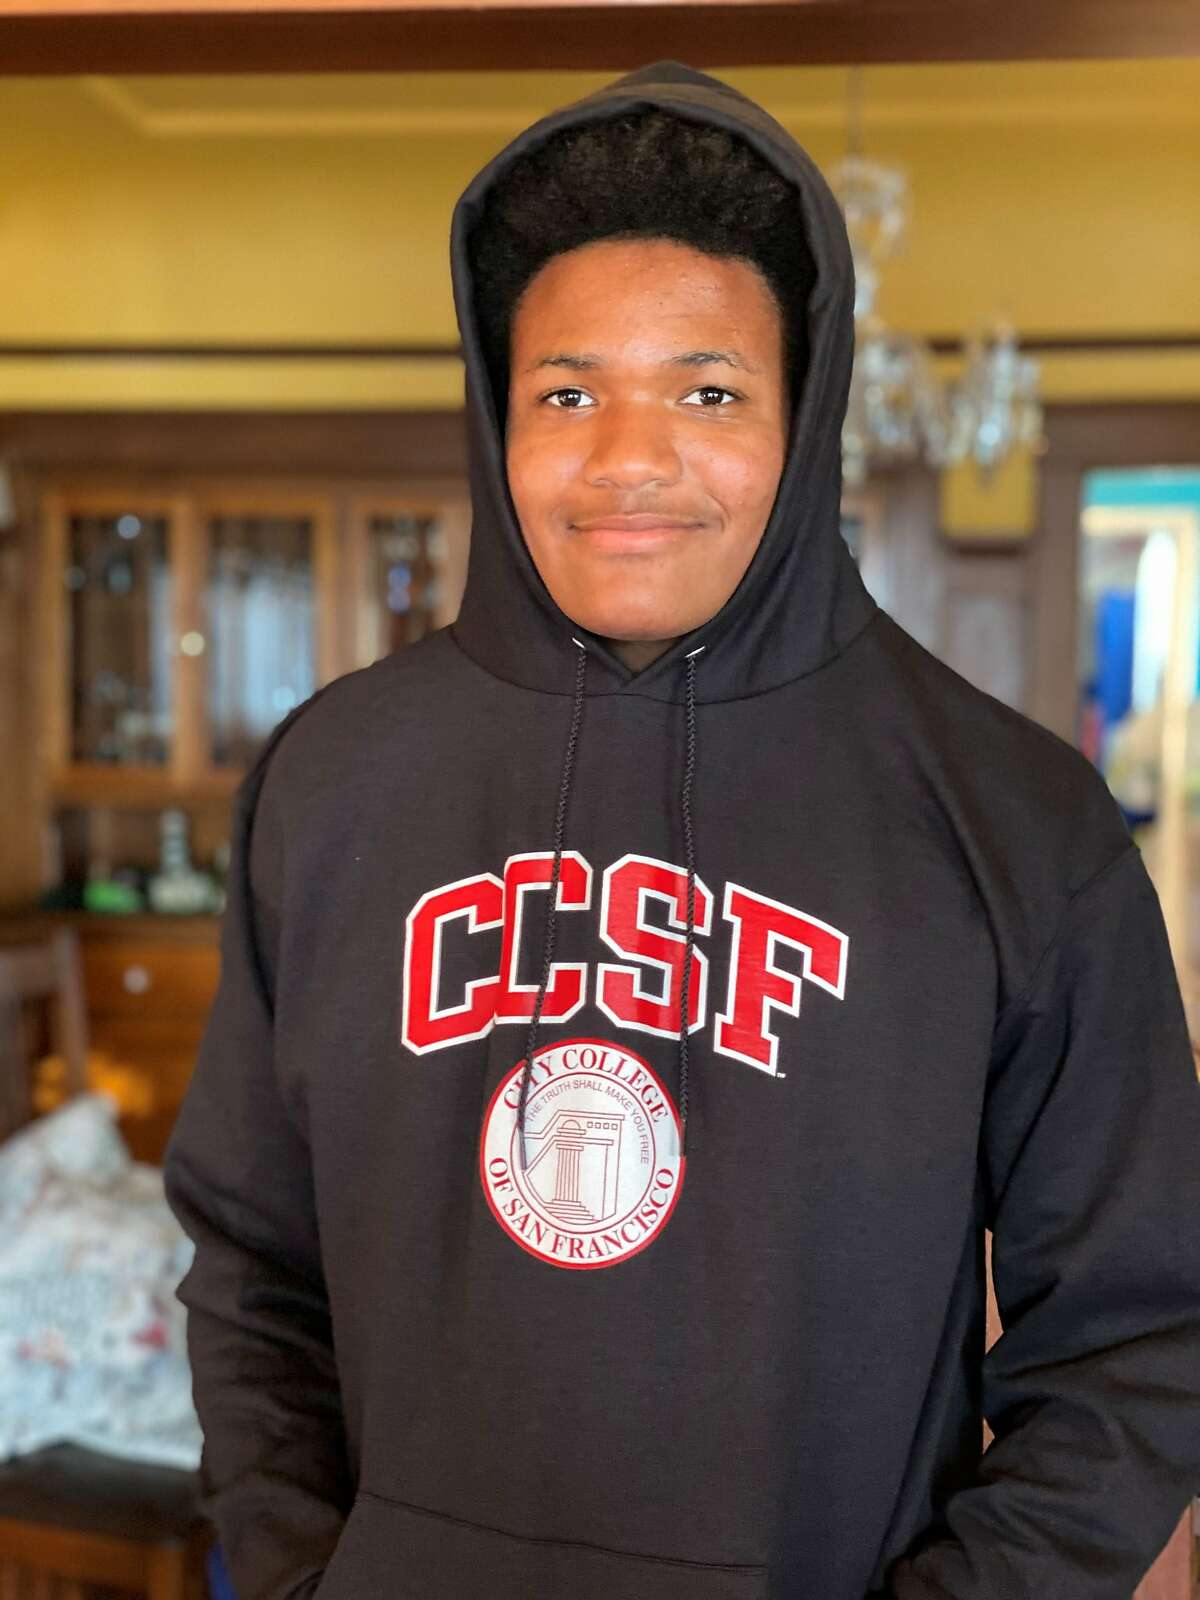 Zane Fisher-Paulson poses with his new City College of San Francisco sweatshirt, where he is now enrolled for the fall semester.